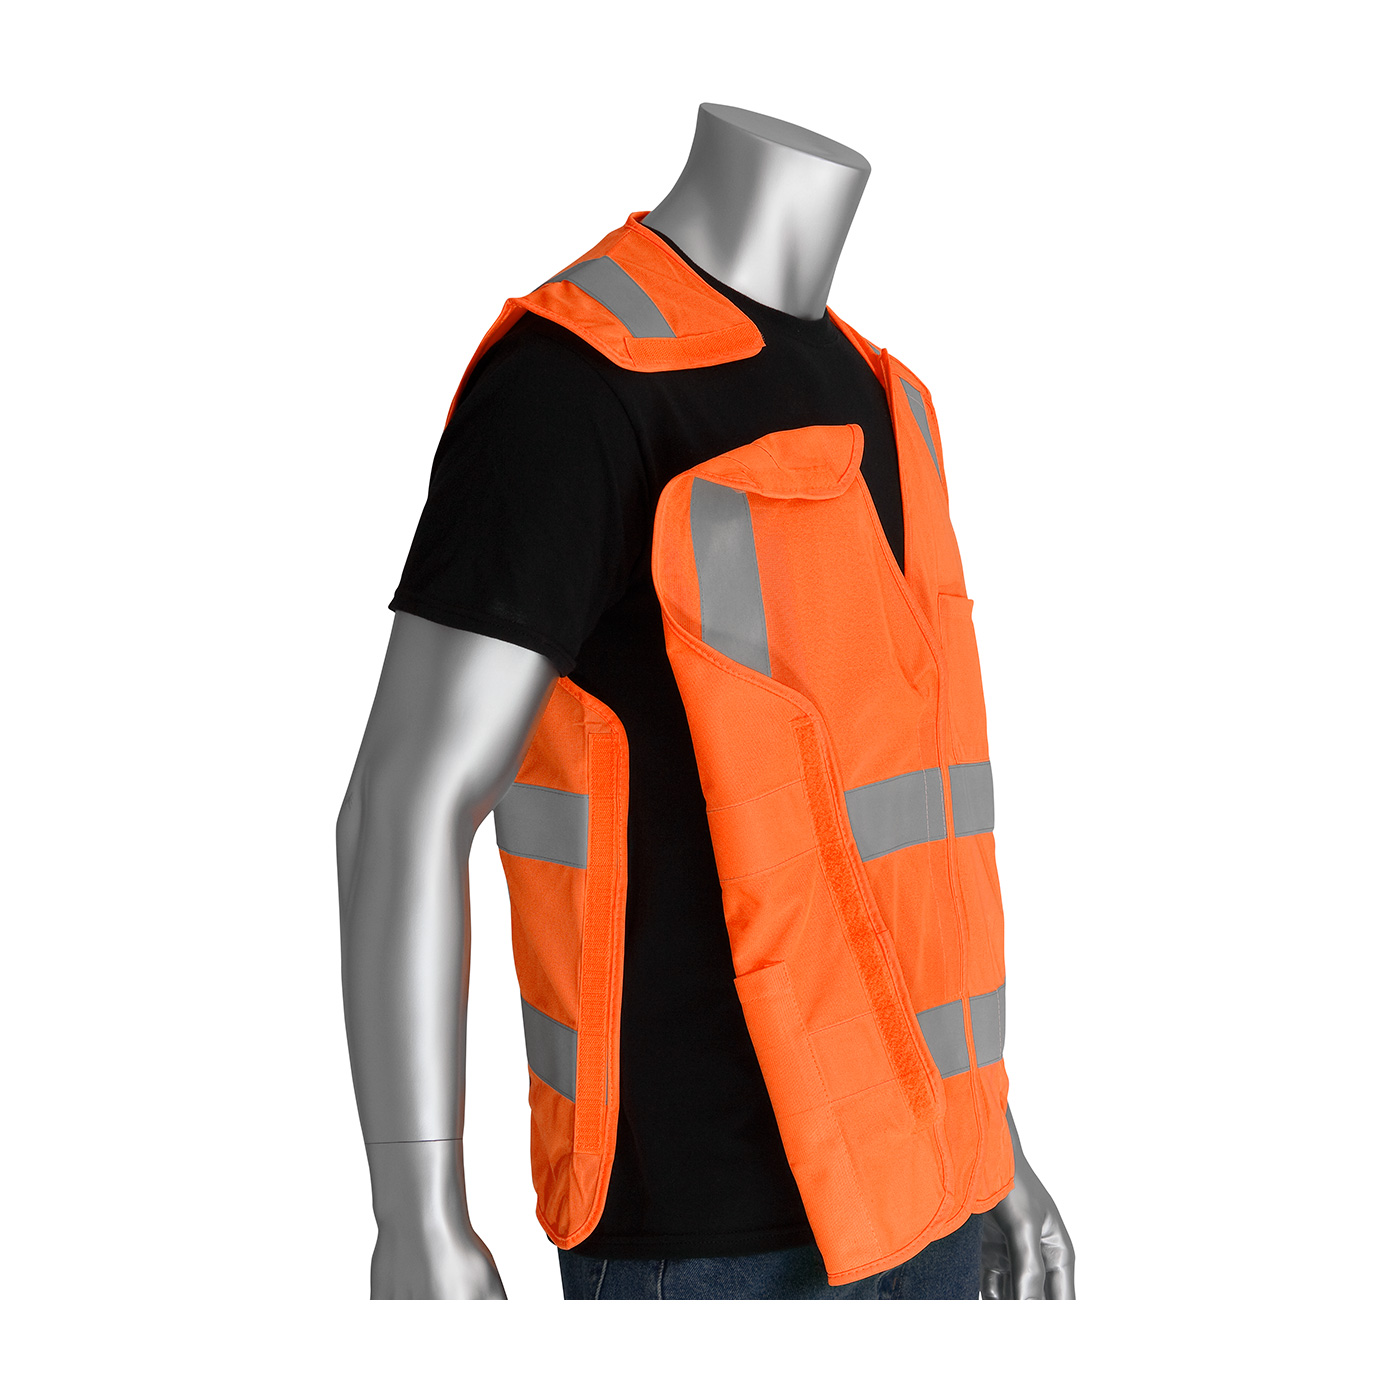 PIP 305-5PVFROR ANSI Class 2 Type R FR-Treated 5-Point Breakaway Solid Fabric Vest, Orange